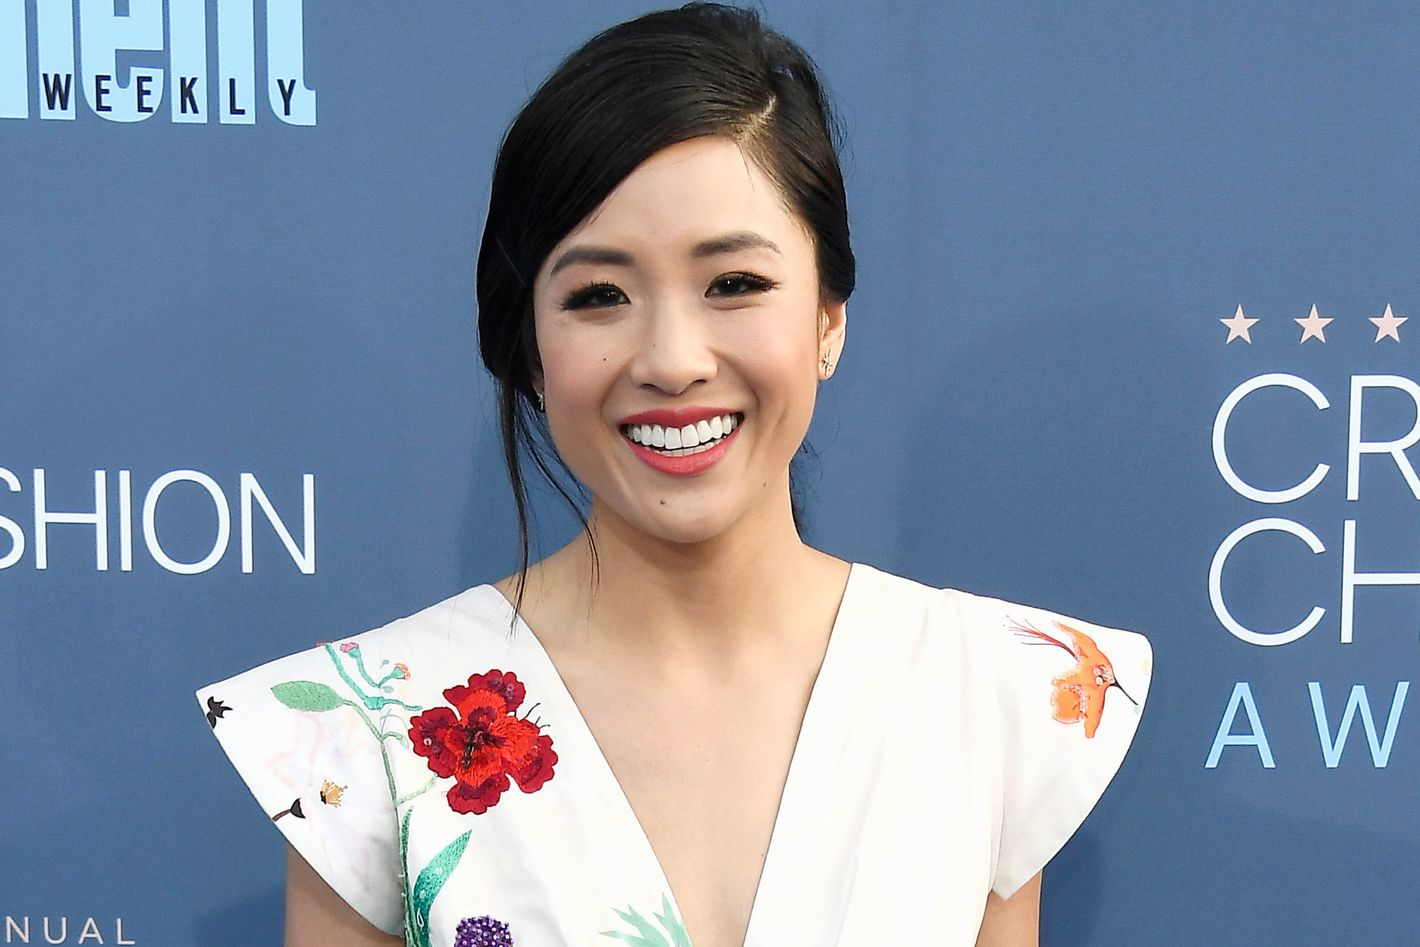 Discussion on this topic: Parminder Nagra, constance-wu/